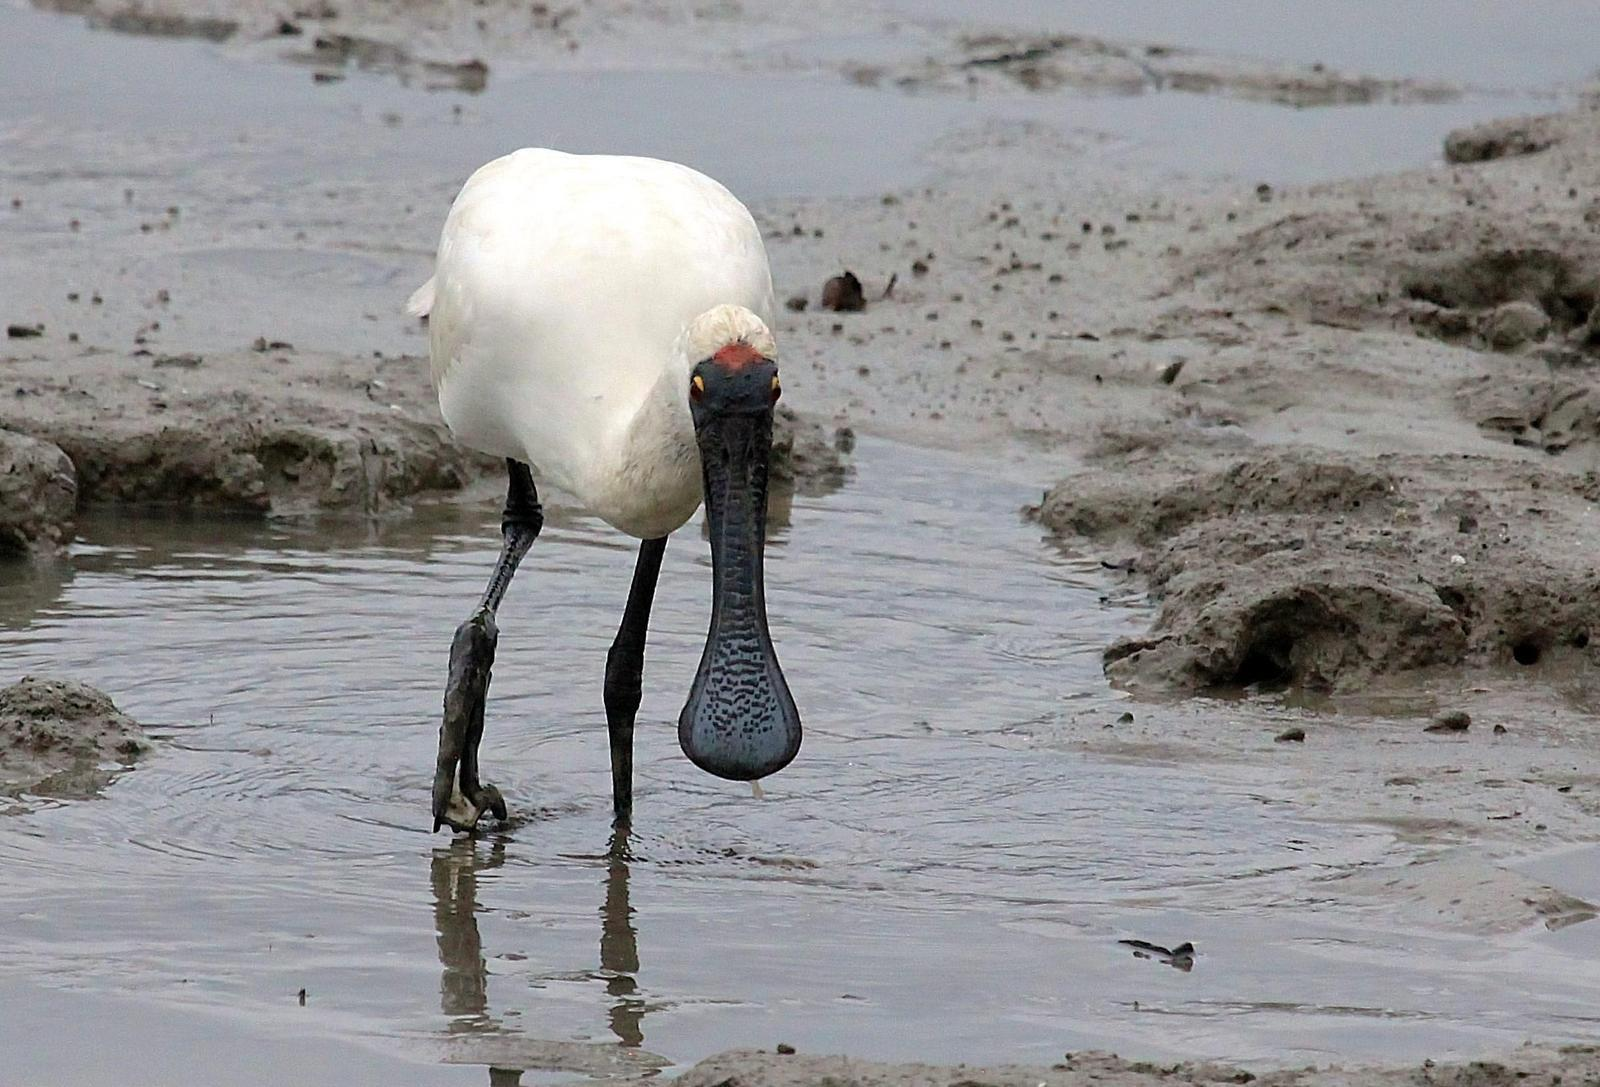 Royal Spoonbill Photo by Matthew McCluskey